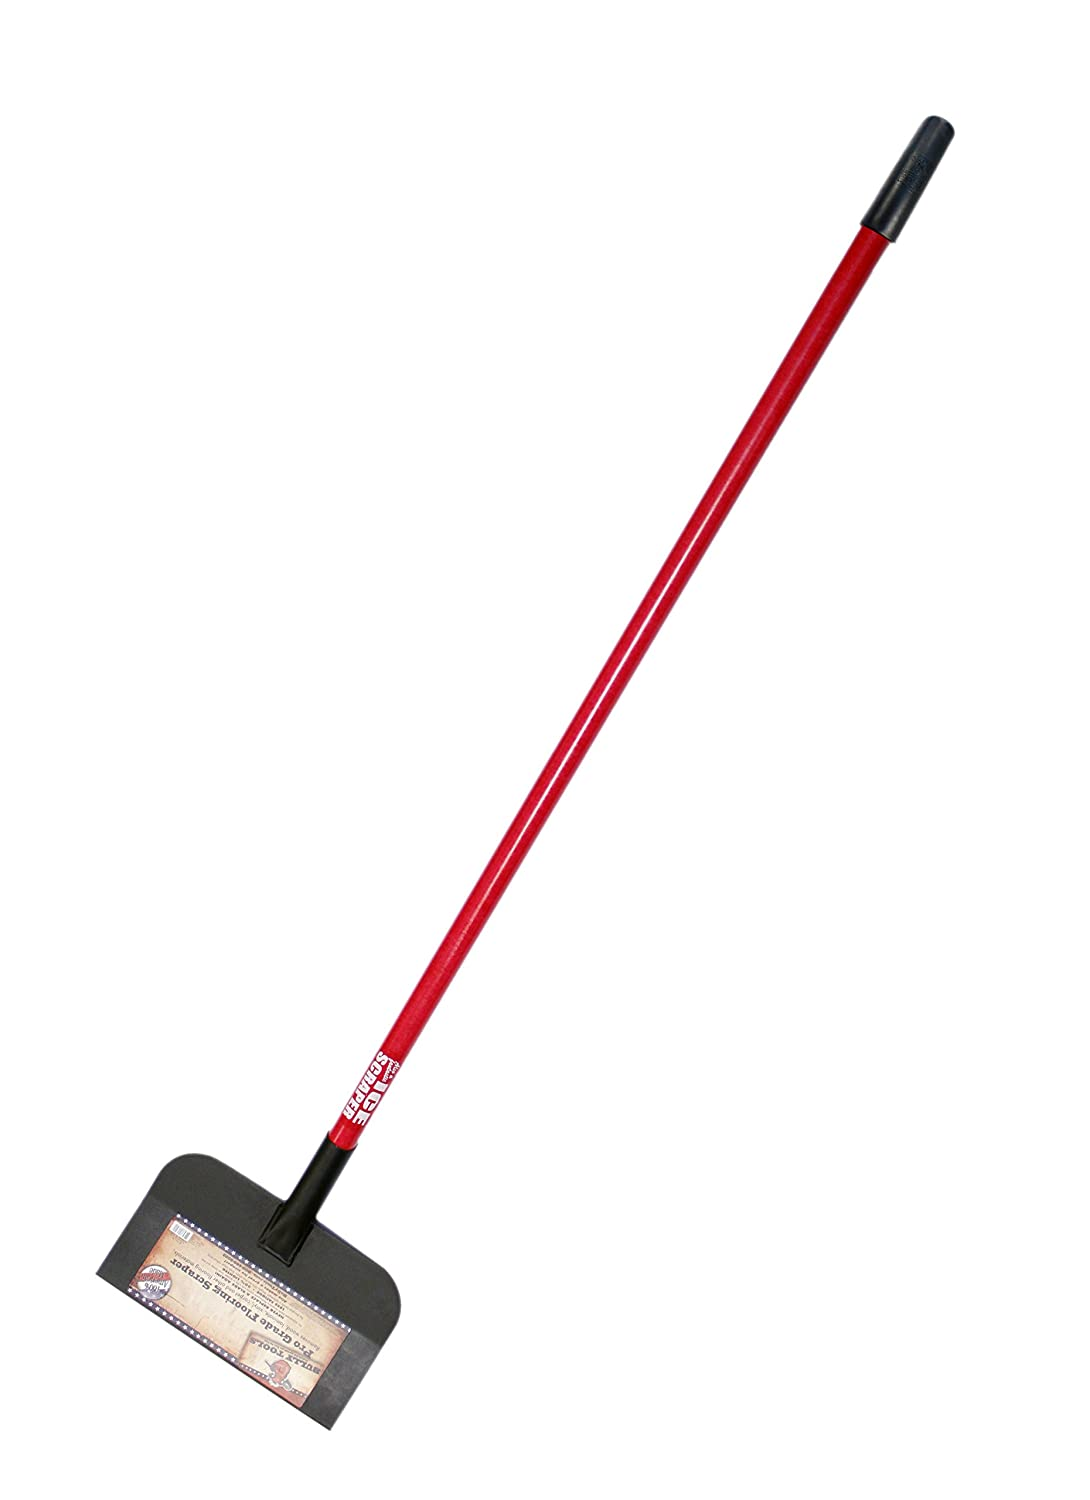 Bully Tools 91340 Big 12 Inch Steel Flooring Scraper With